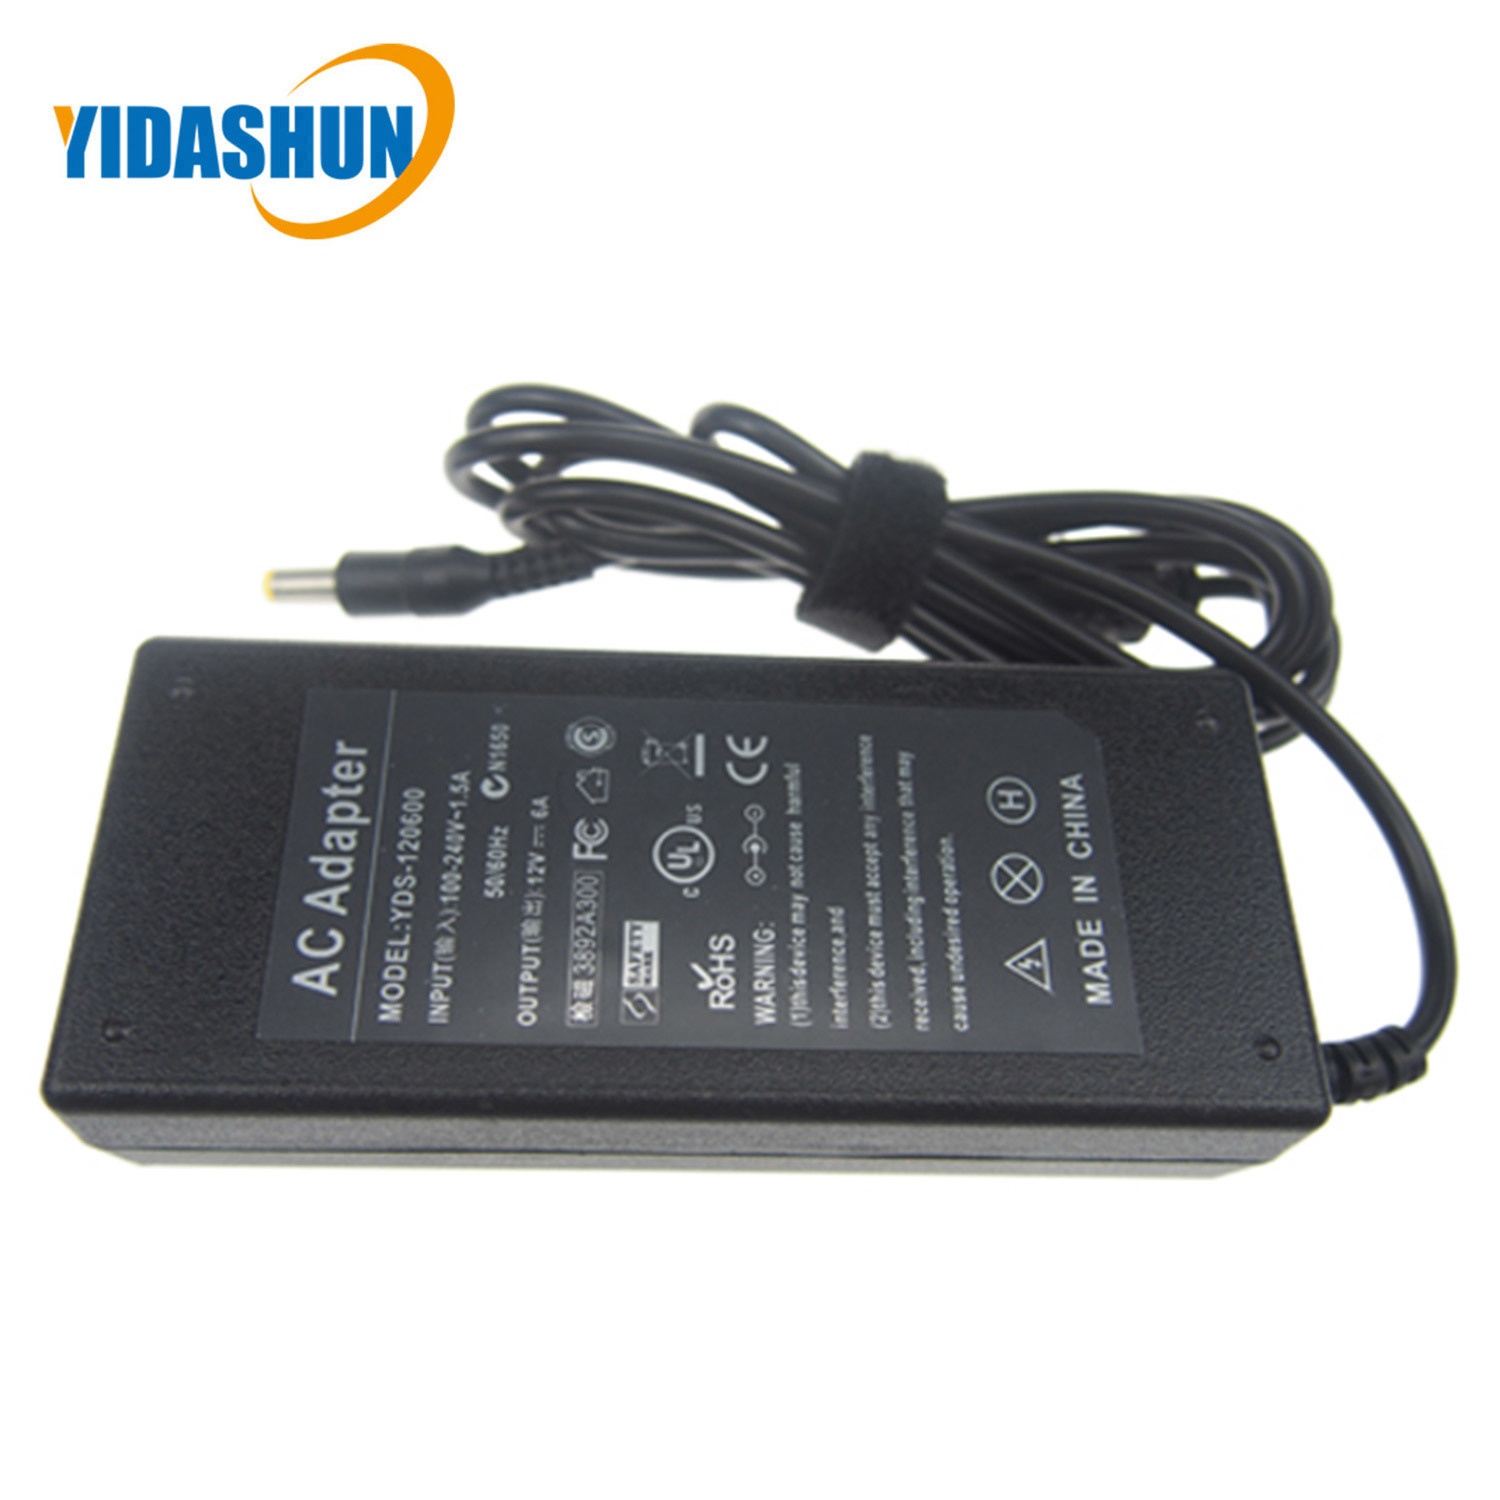 12 Volt Power Adapter Hot Item For Lcd Ac Power Supply Adapter Dc 12 Volt 6 Amp 12v 6a